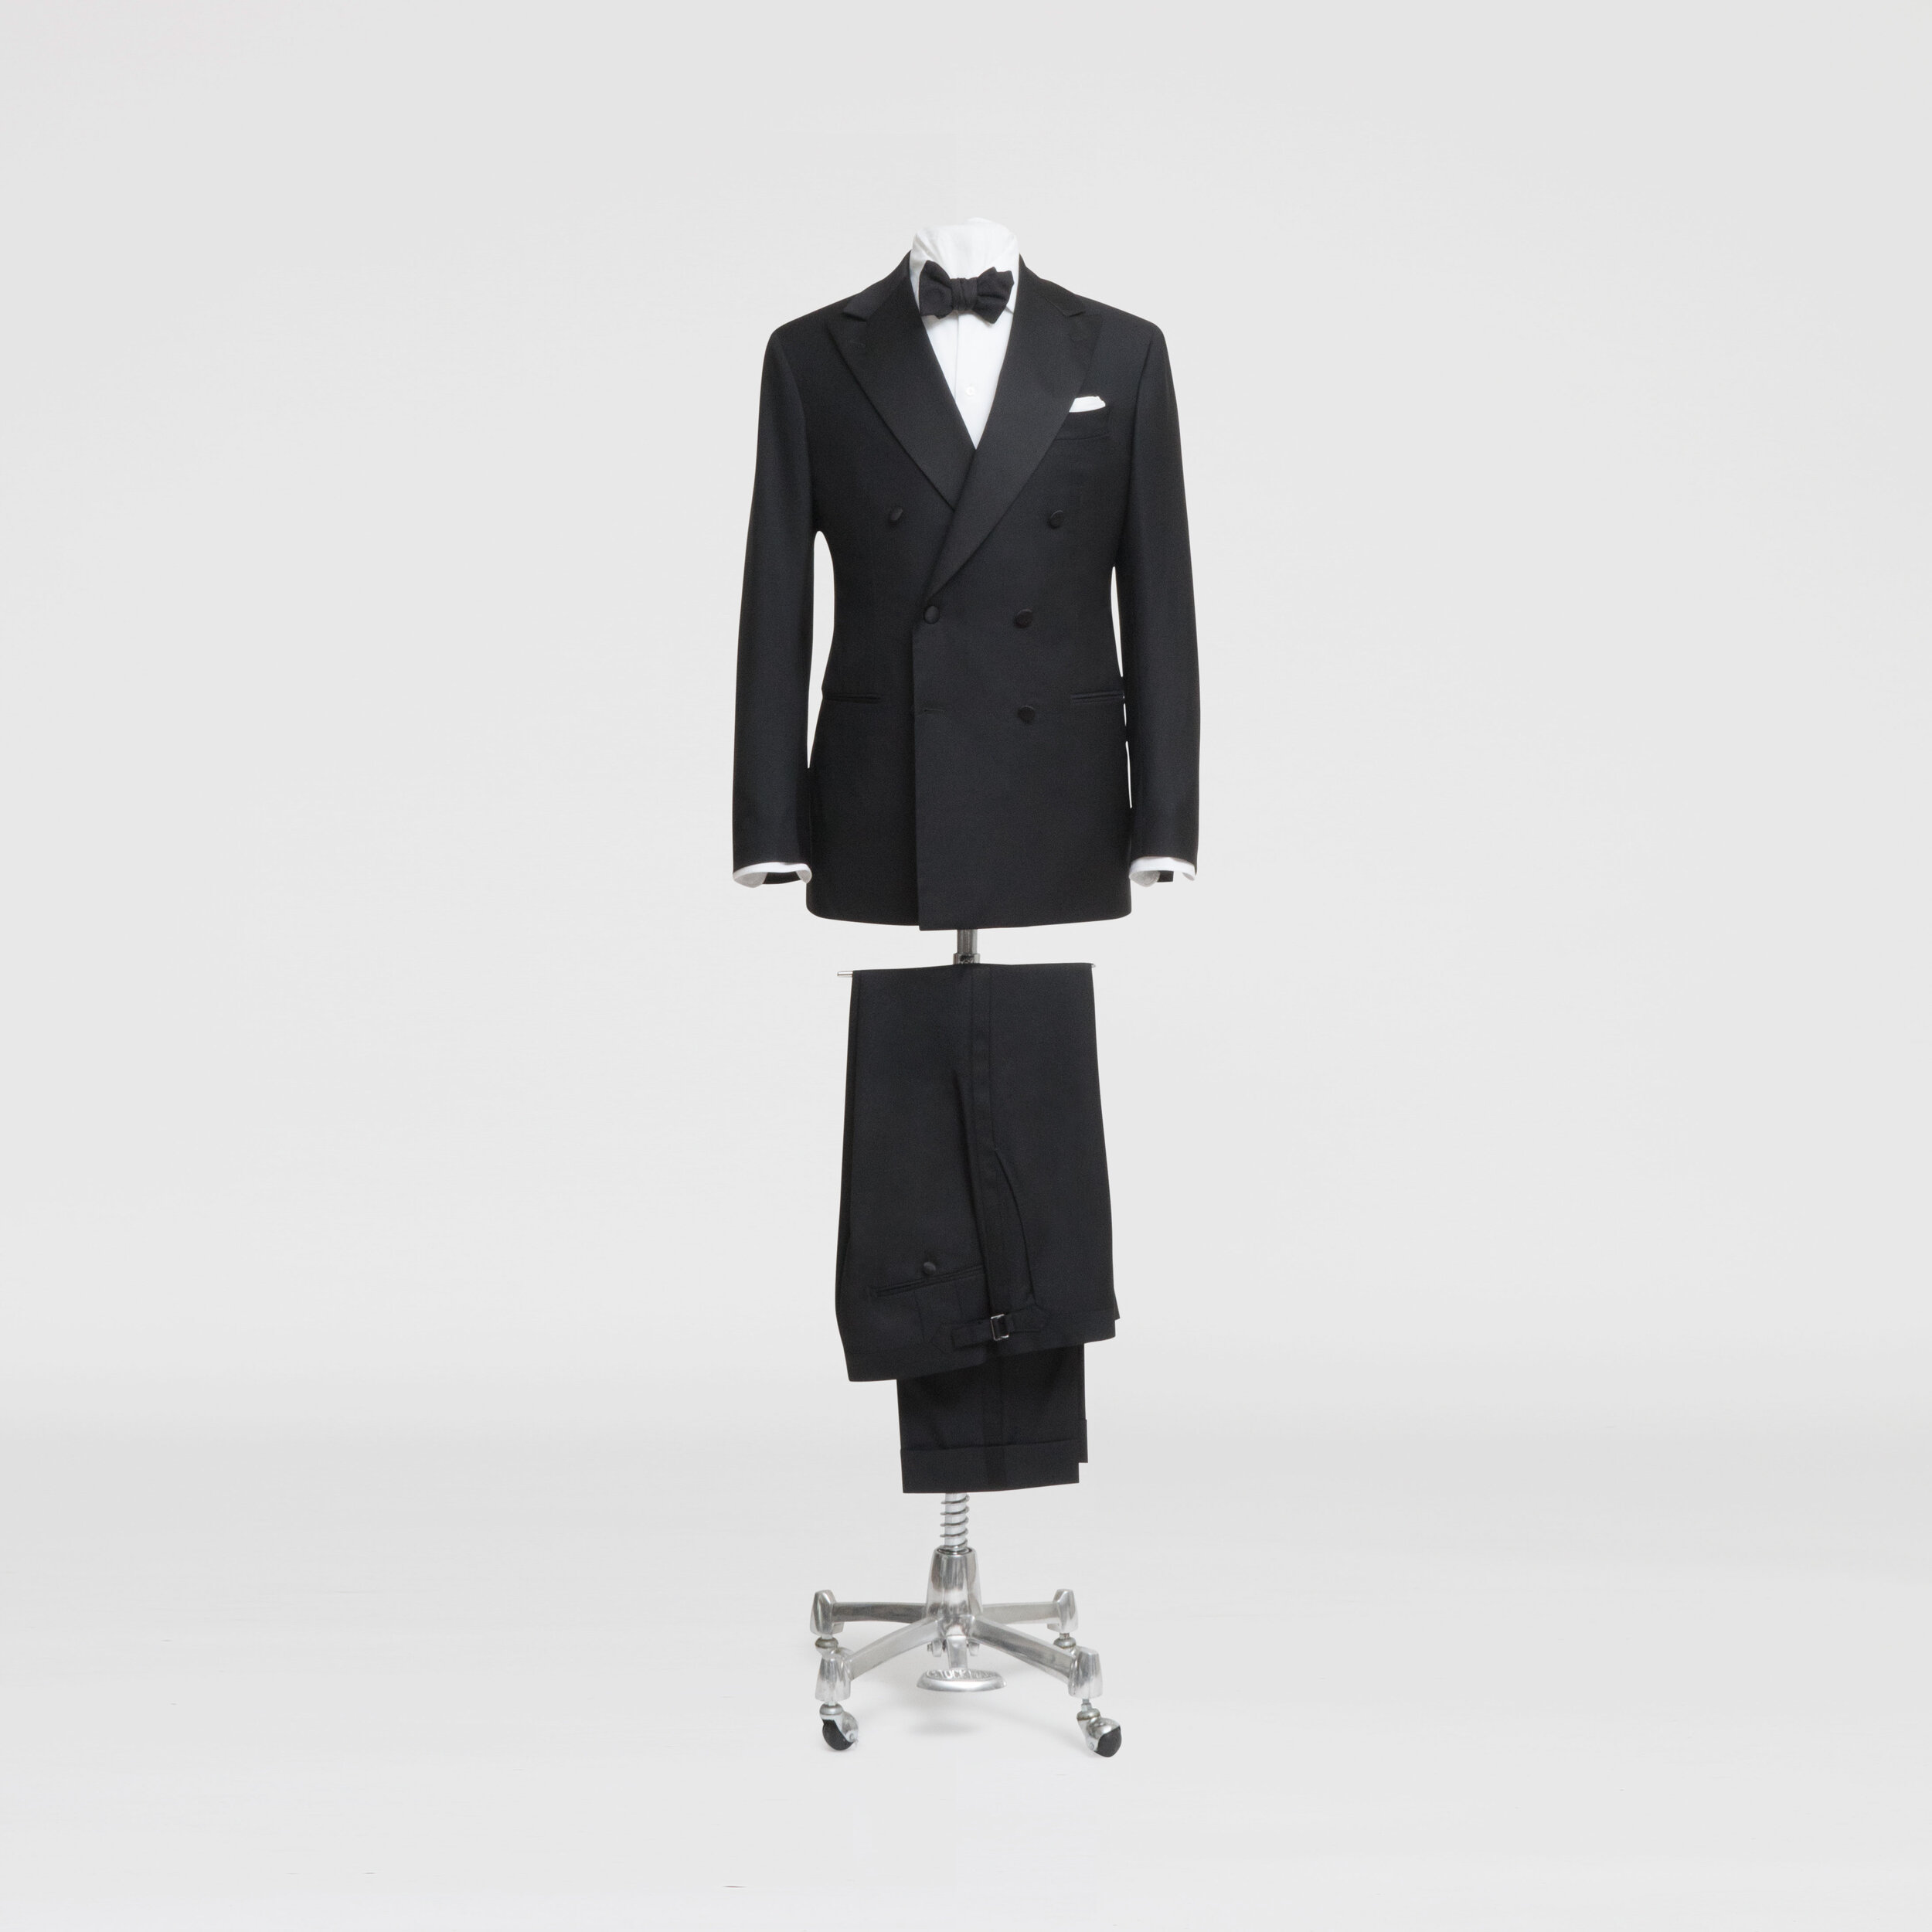 Winter Weddings - Peak lapels or a double breasted closure adds a little more presence and visual sharpness to the suit. It's an elegant option for any wedding, but is particularly well suited to formal, city events in the cooler months.